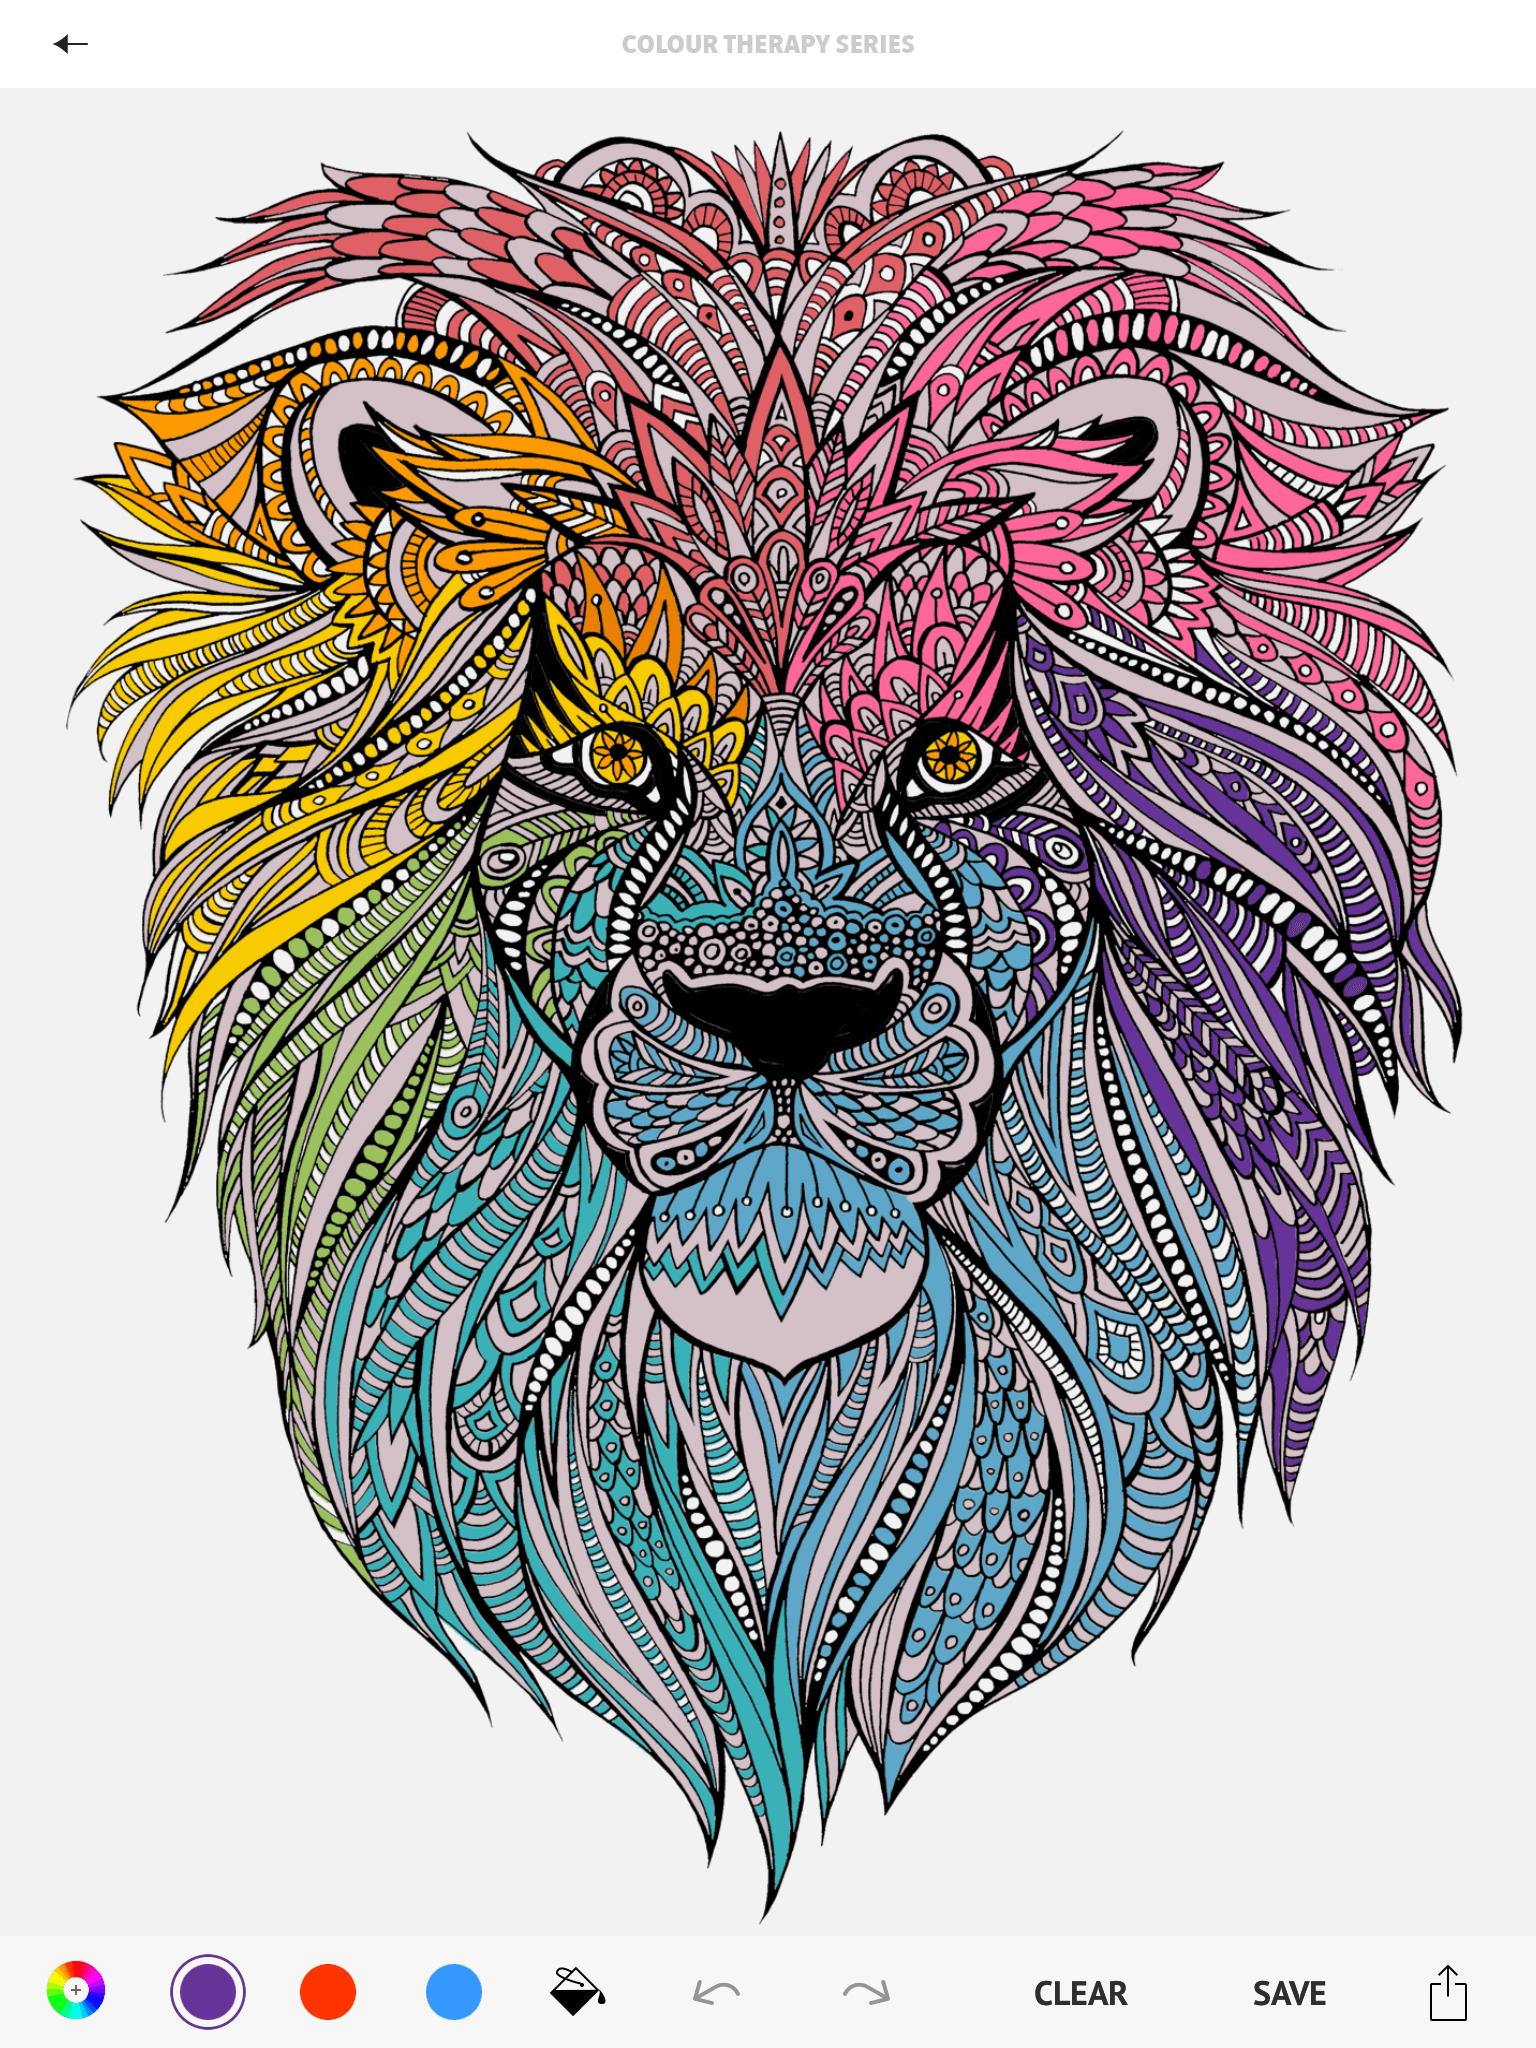 Lion Page From The Colour Therapy Adult Colouring App